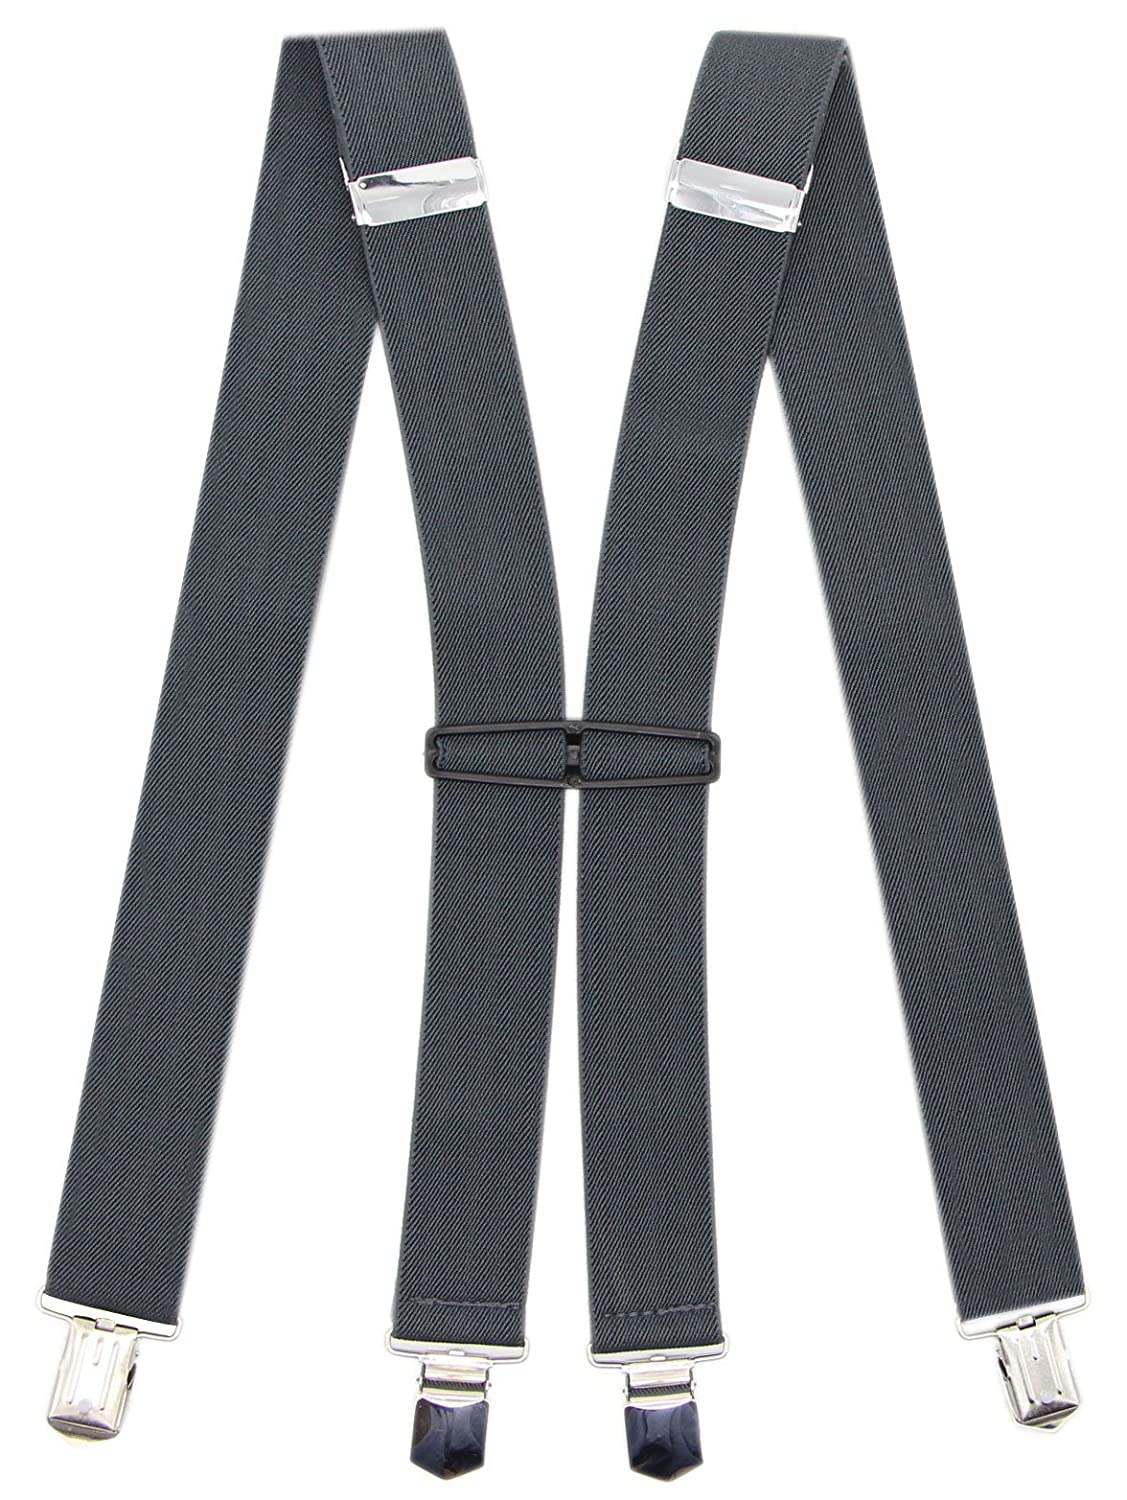 Suspenders For Men With 4 Clips 11 Colors For Formal And Casual Occasions